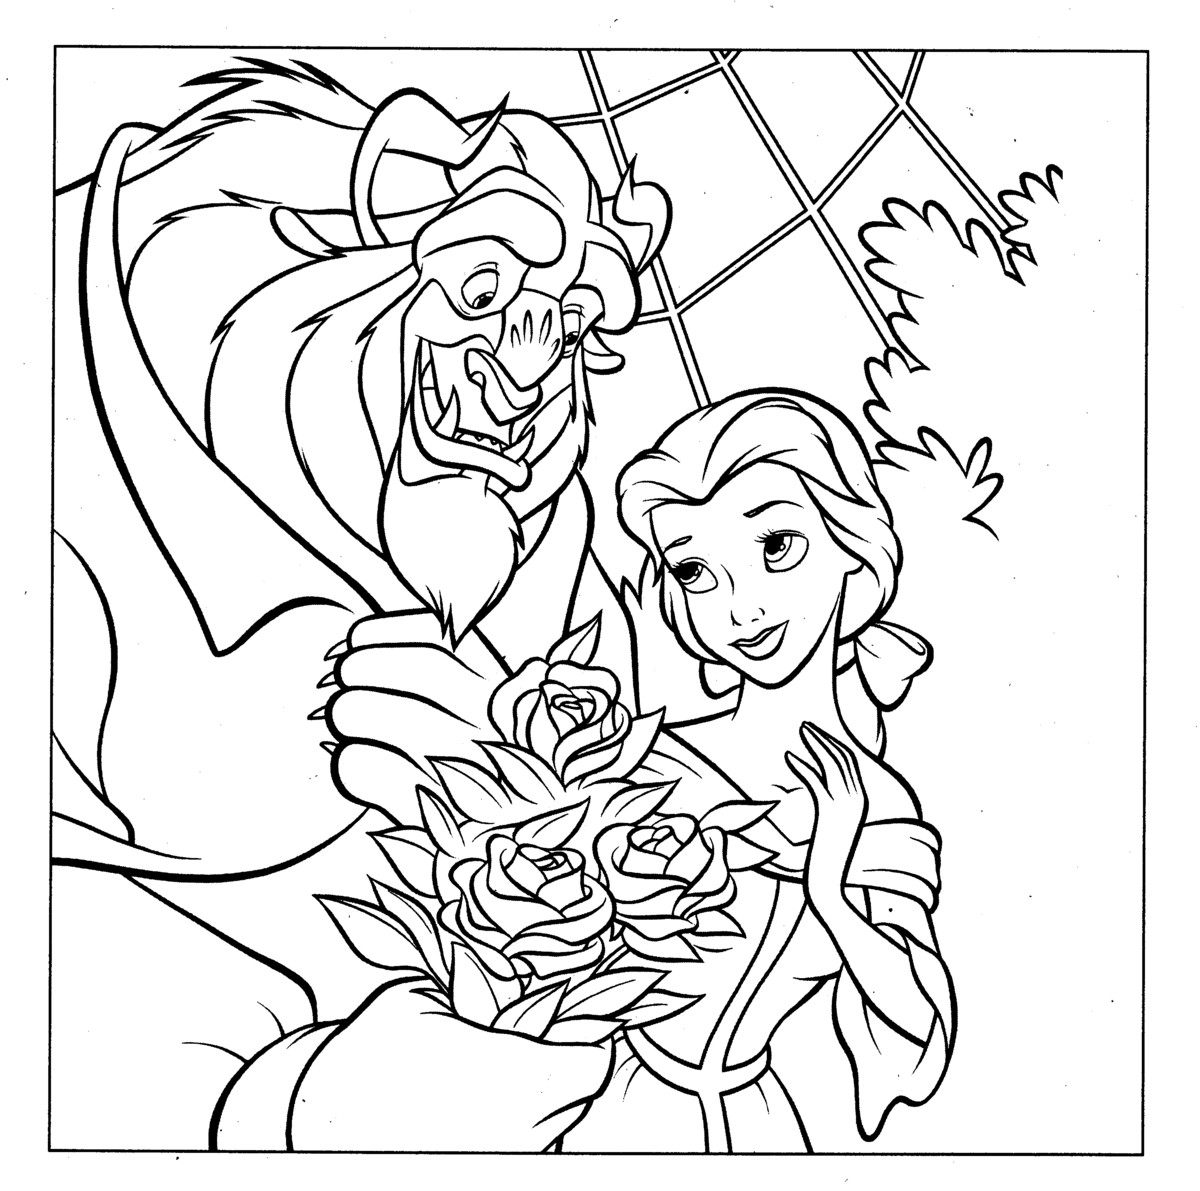 Disney valentine coloring pages search results for Disney valentine coloring pages